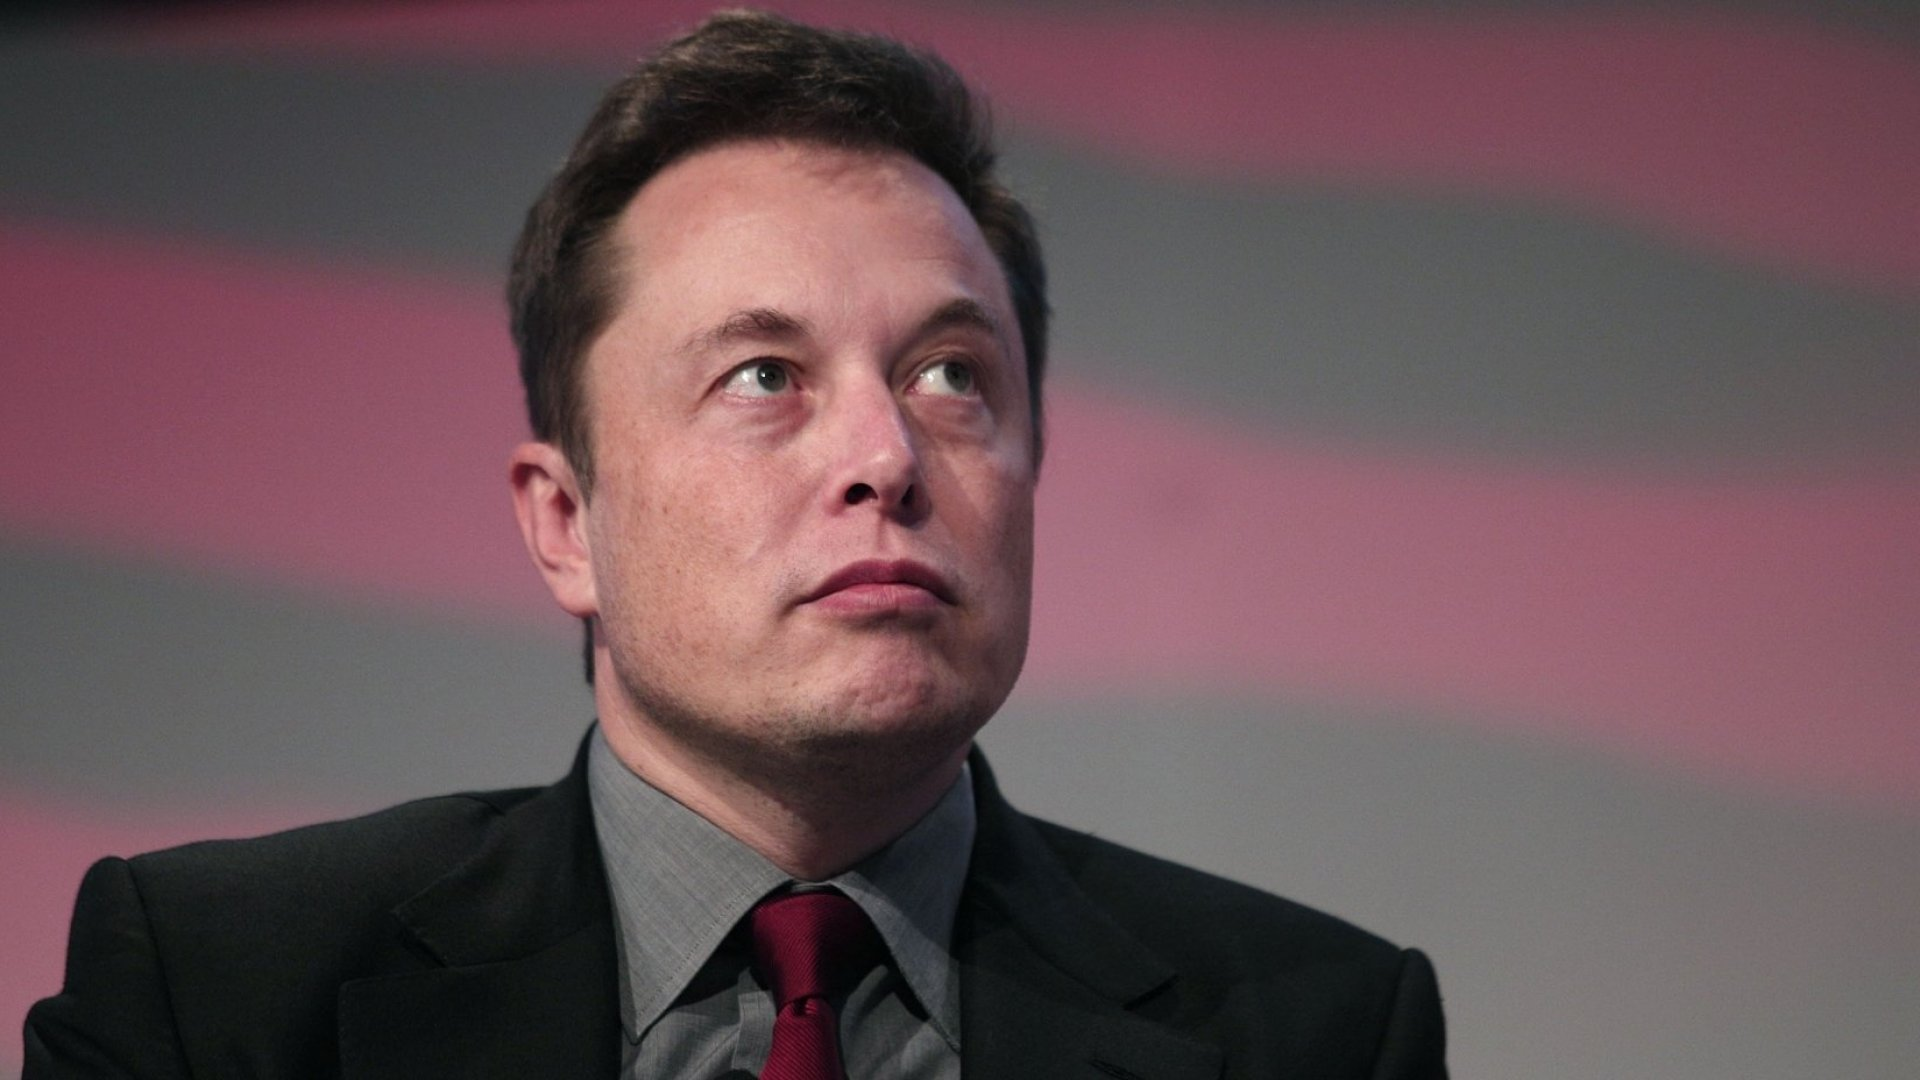 Elon Musk Warns He Will Leave Trump's Council if U.S. Pulls Out of Climate Change Agreement